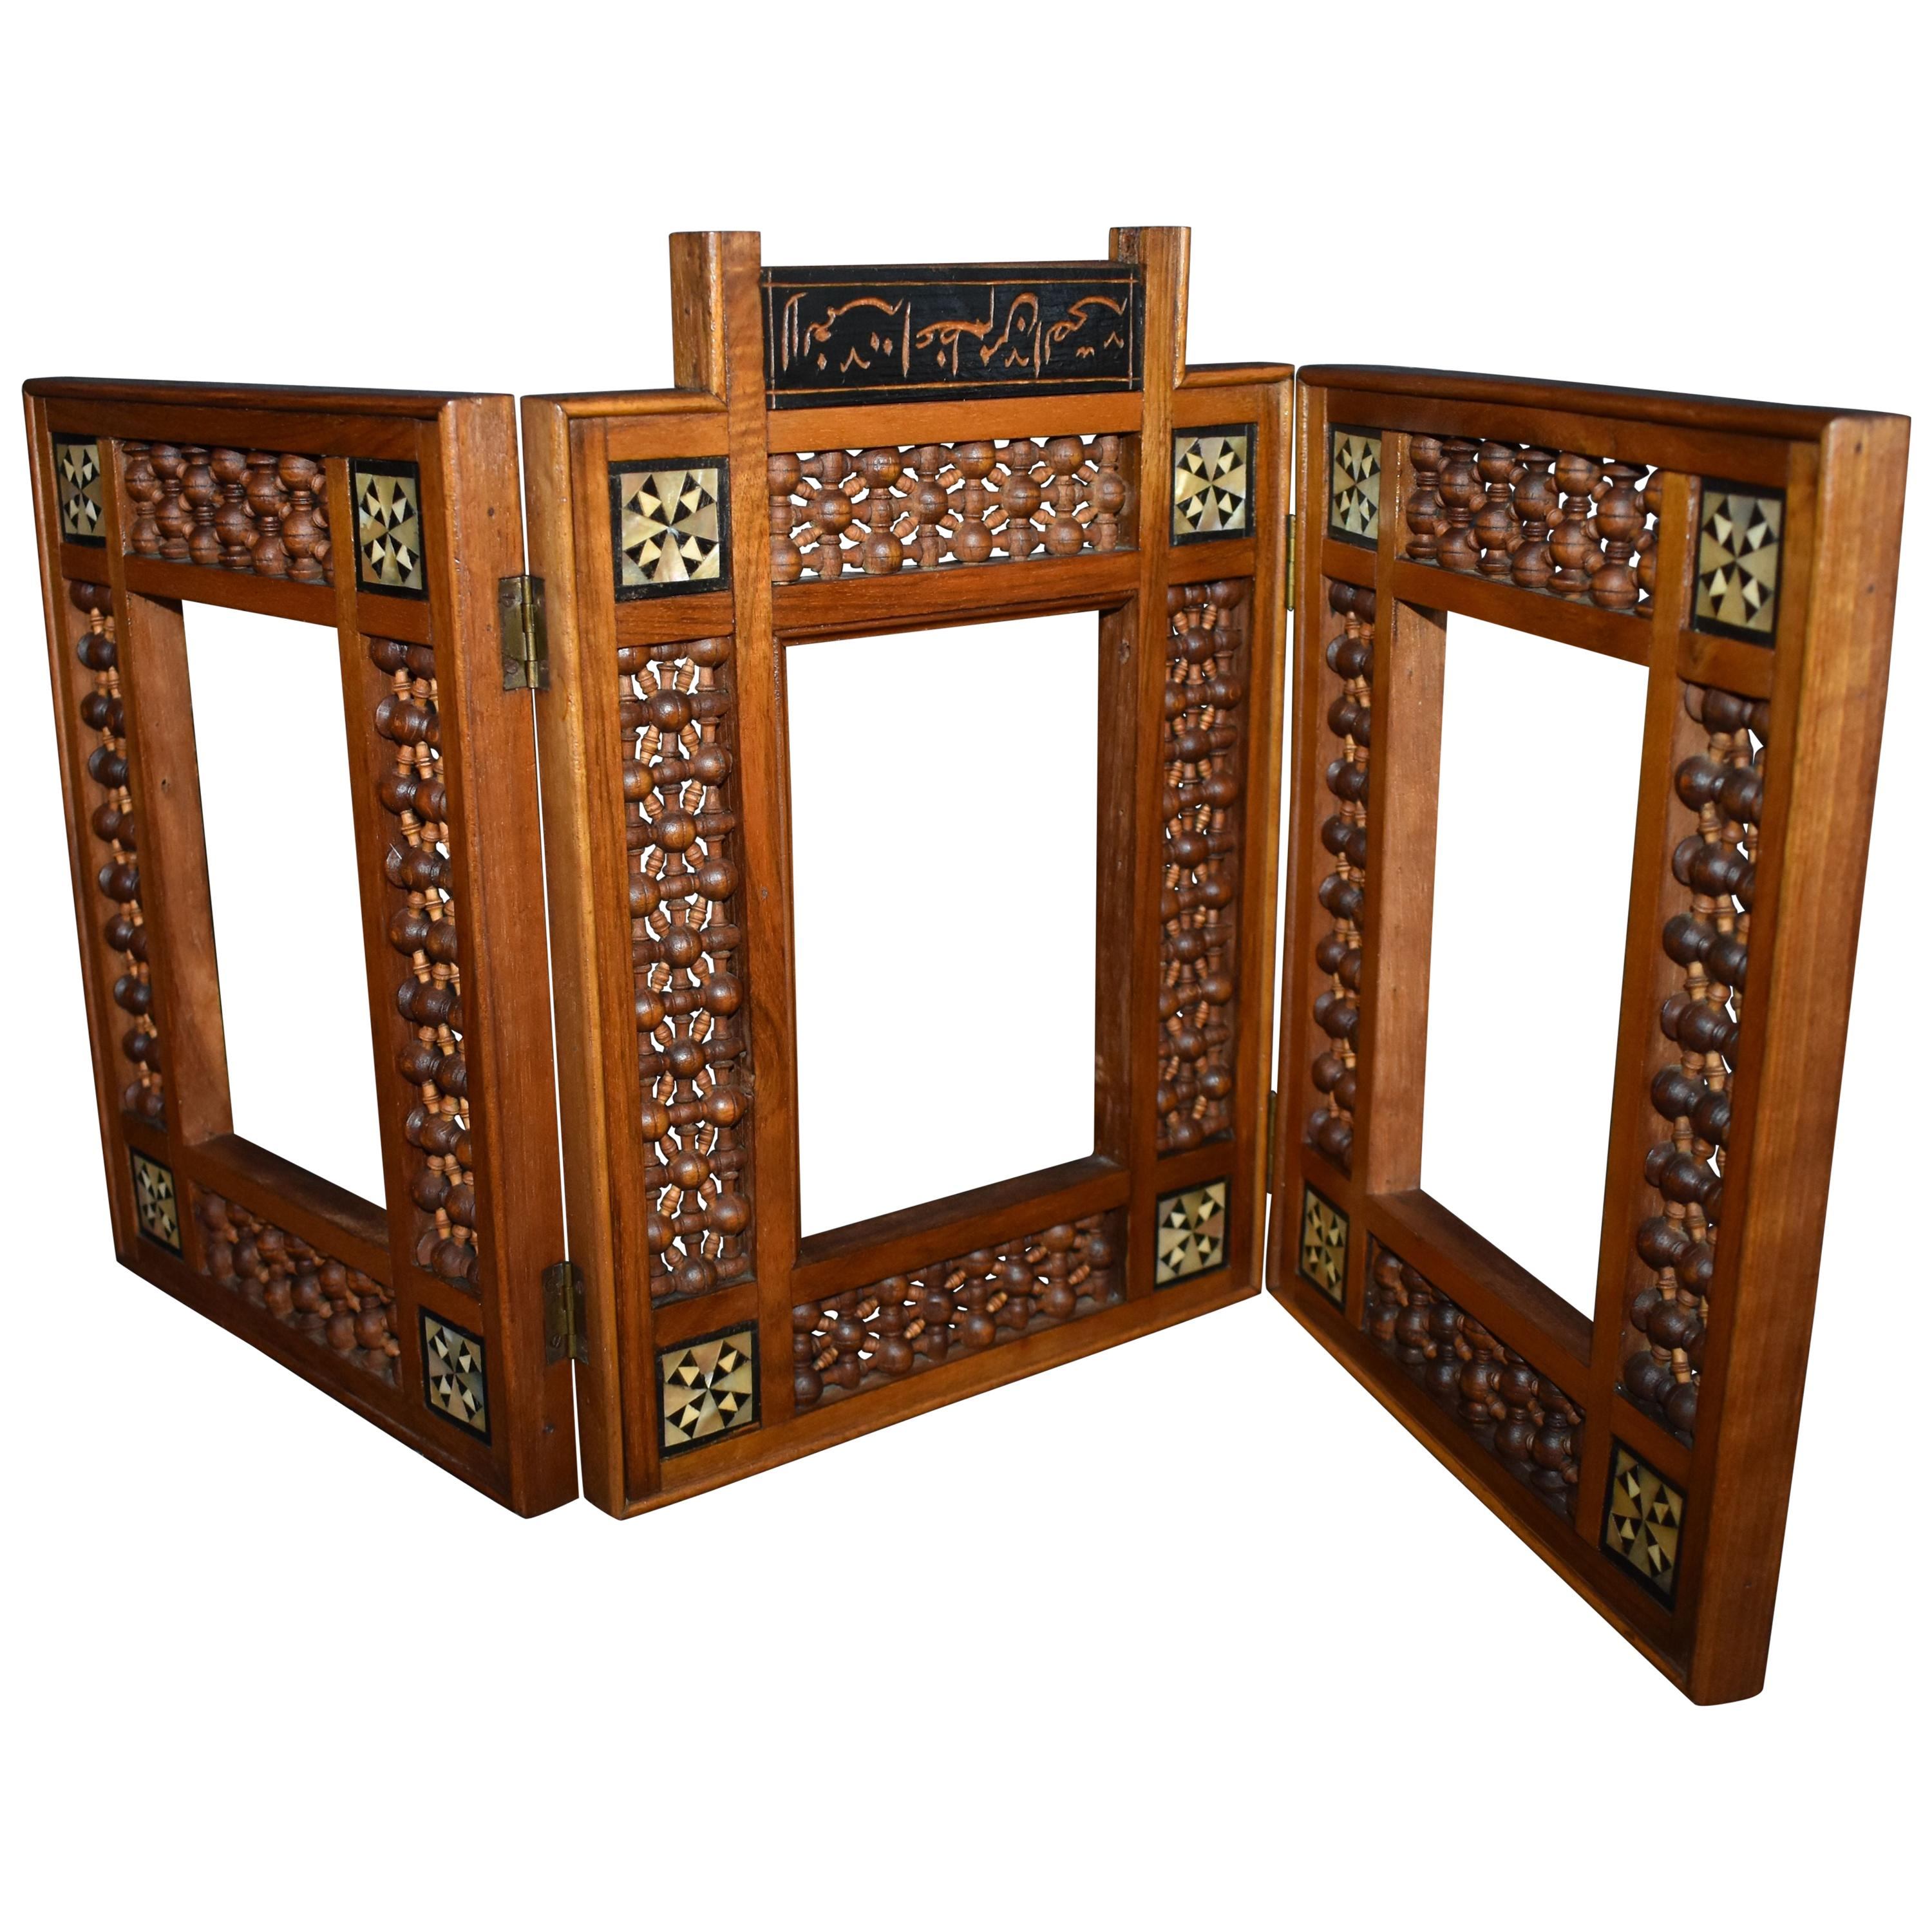 Antique Wooden Syrian Picture Frames or Mirror Frames